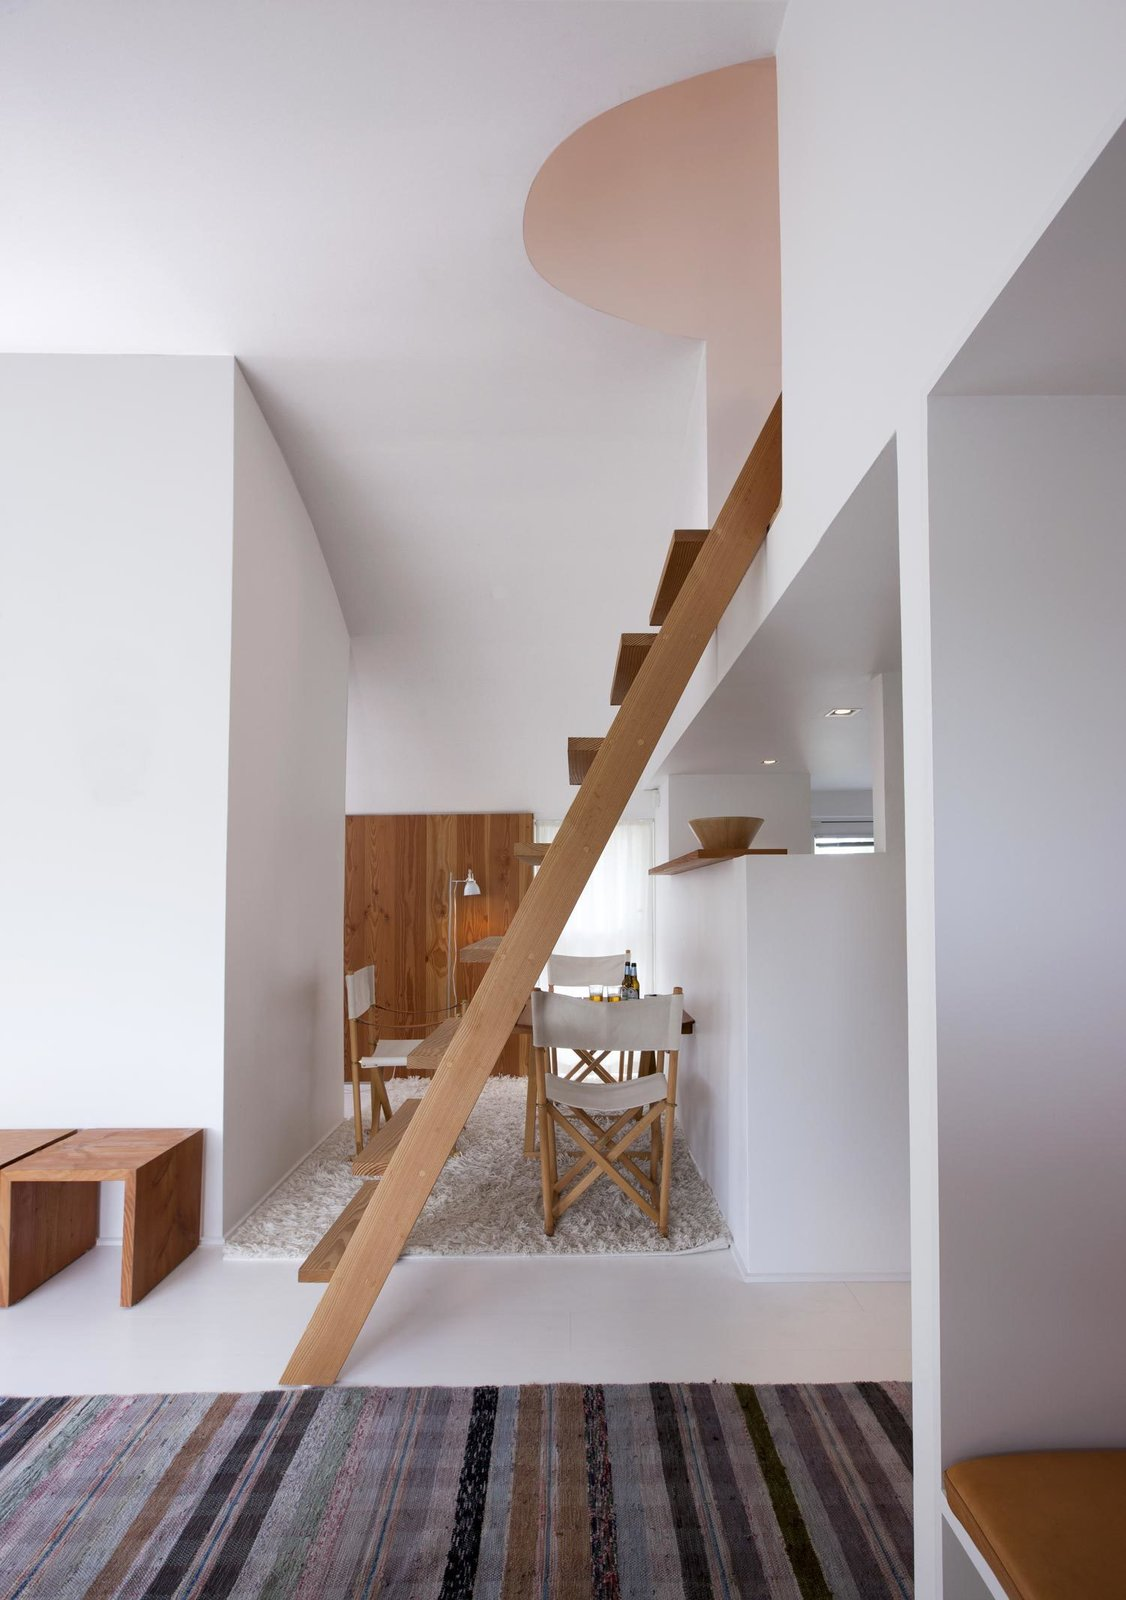 Staircase and Wood Tread A small dining room occupies the space just beyond the living room. It's furnished with vintage folding chairs designed by Danish architect Mogens Koch that are easily stored for more space.  D e n m a r k from A Thatched Cottage in Denmark with a Modern, Space-Saving Interior